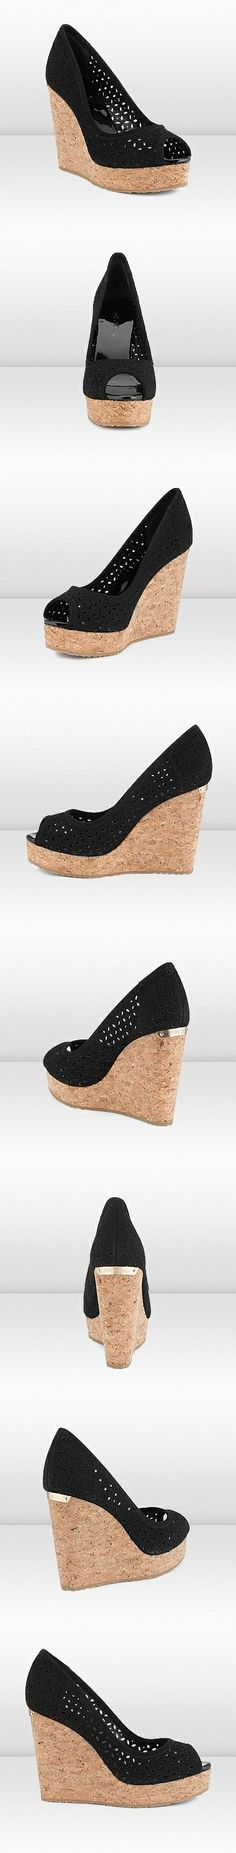 """Jimmy Choo - Papina - 134papinabpsu - Black Perforated Suede Platform Wedge Peep Toe Pump - Papina is a must have Jimmy Choo wedge with a city chic edge. These peep toe pumps have been given an artisanal twist with the introduction of suede perforated with a pretty petal pattern. The cork wedge is lightweight and the sole has been finished with rubber for extra grip. Heel height measures 120mm / 4.7"""" with a 30mm/ 1.2"""" platform."""